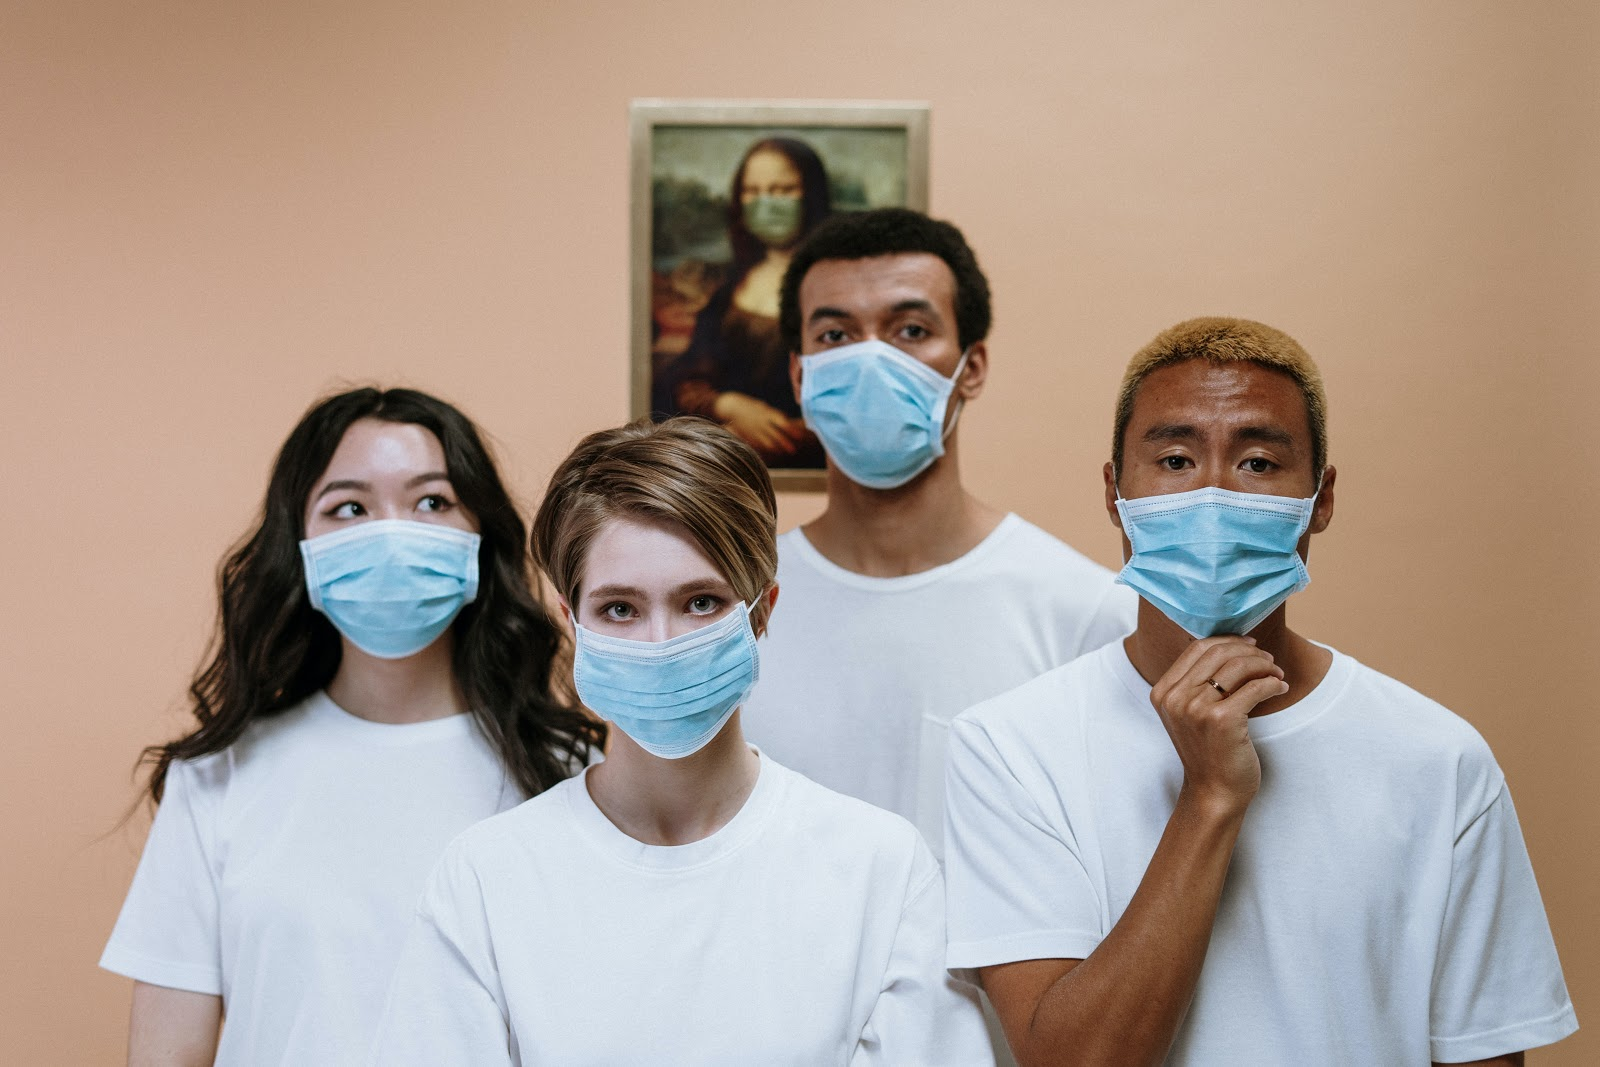 Two men and two women wearing blue face masks and white t-shirts stand in front of a picture of the Mona Lisa wearing a green facemask